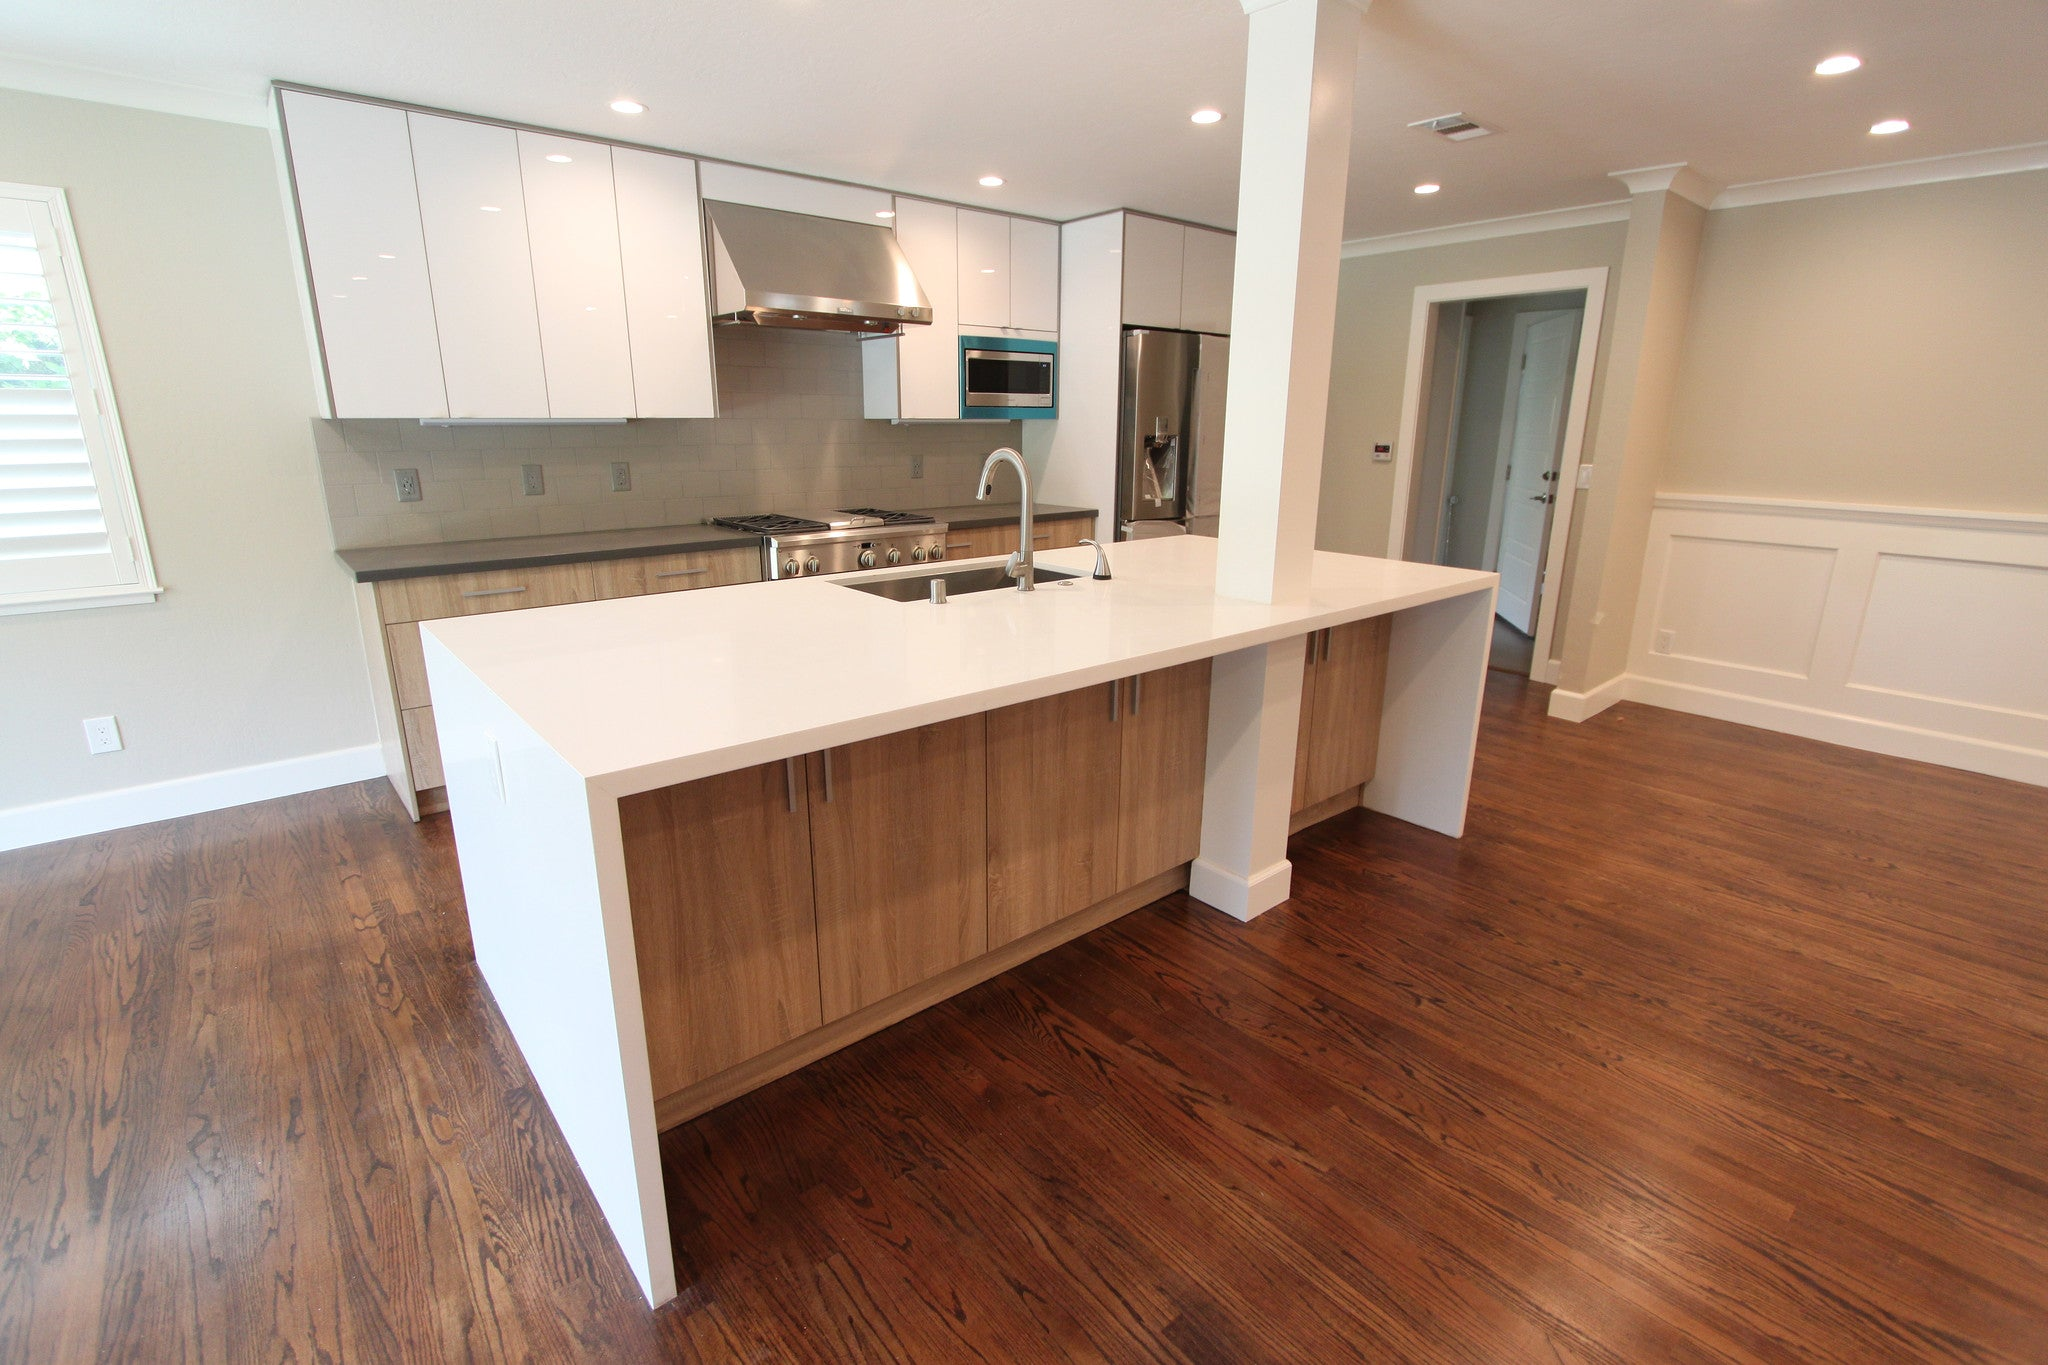 Japanese Style With Natural Wood And Glossy White Frame Less Cabinets  Kitchen